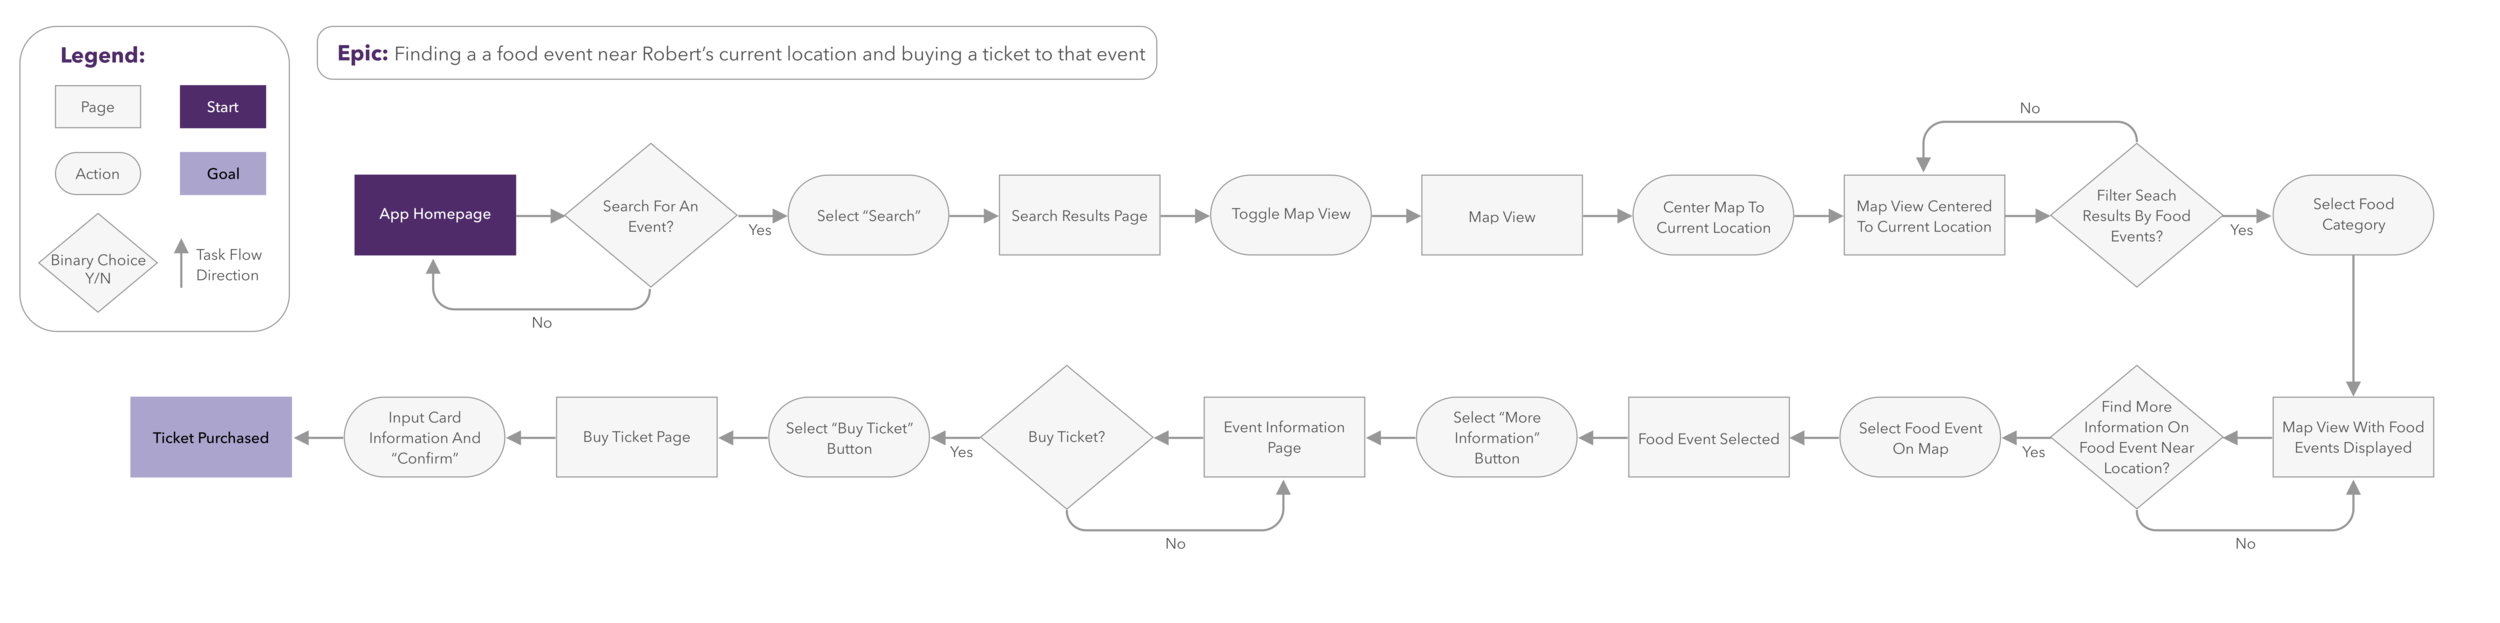 Task Flow Diagram Improved Readability.png